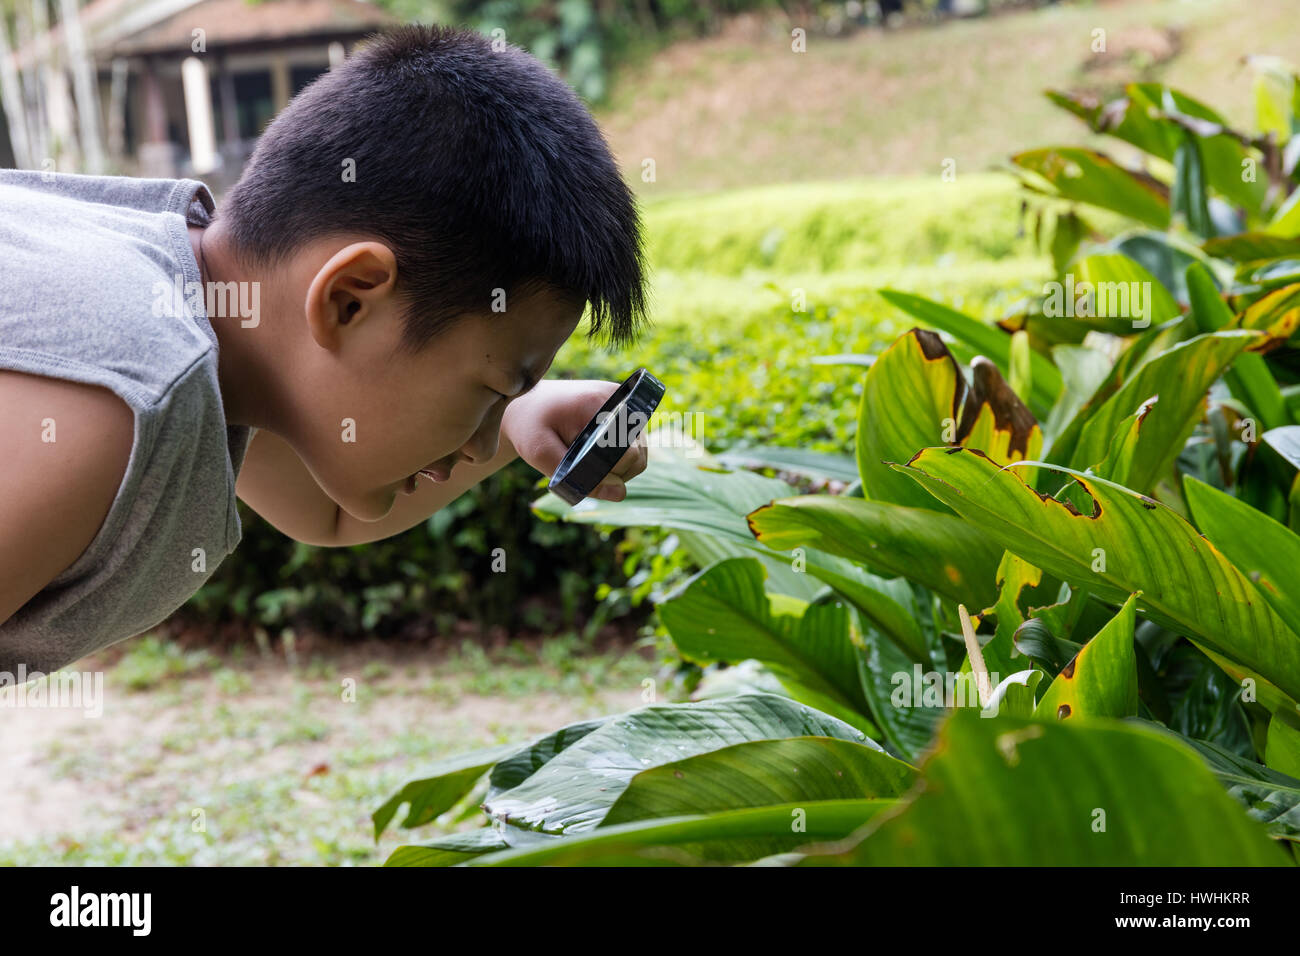 Asian Chinese little boy looking through magnifying glass at a outdoor garden. - Stock Image